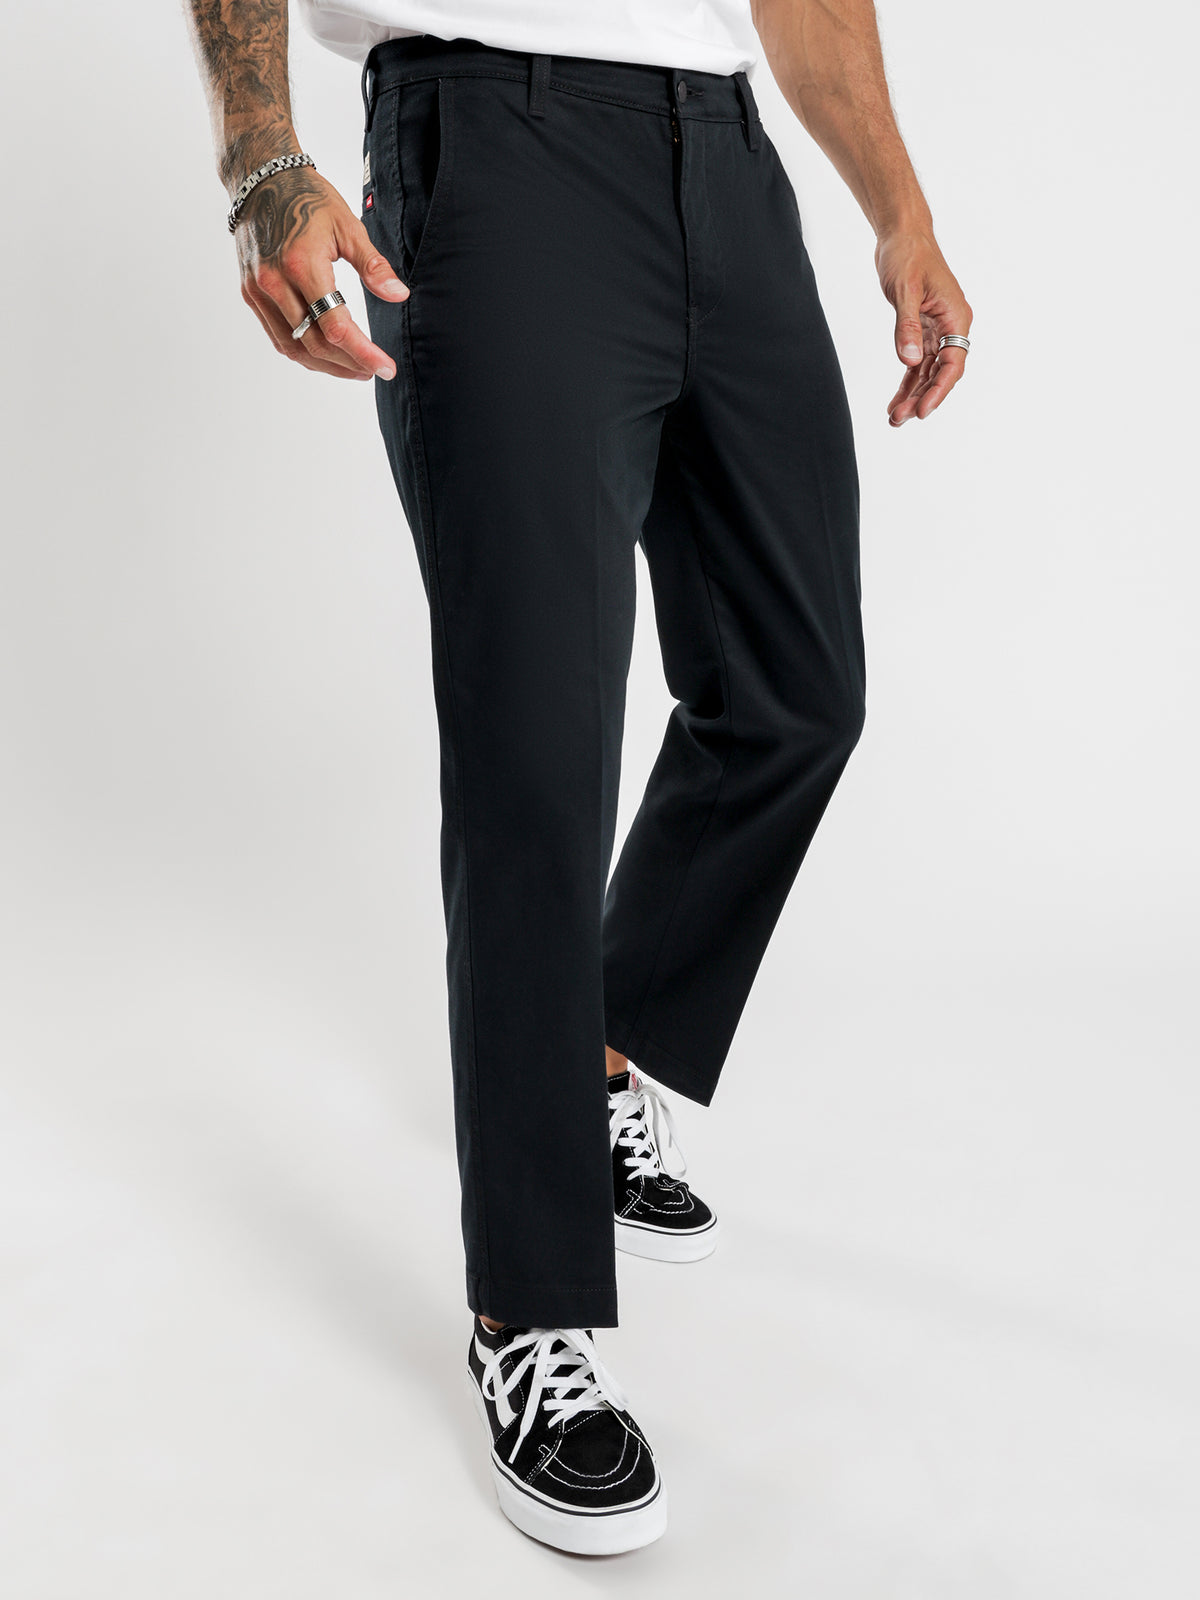 XX Chino Straight Cropped Pants in Black